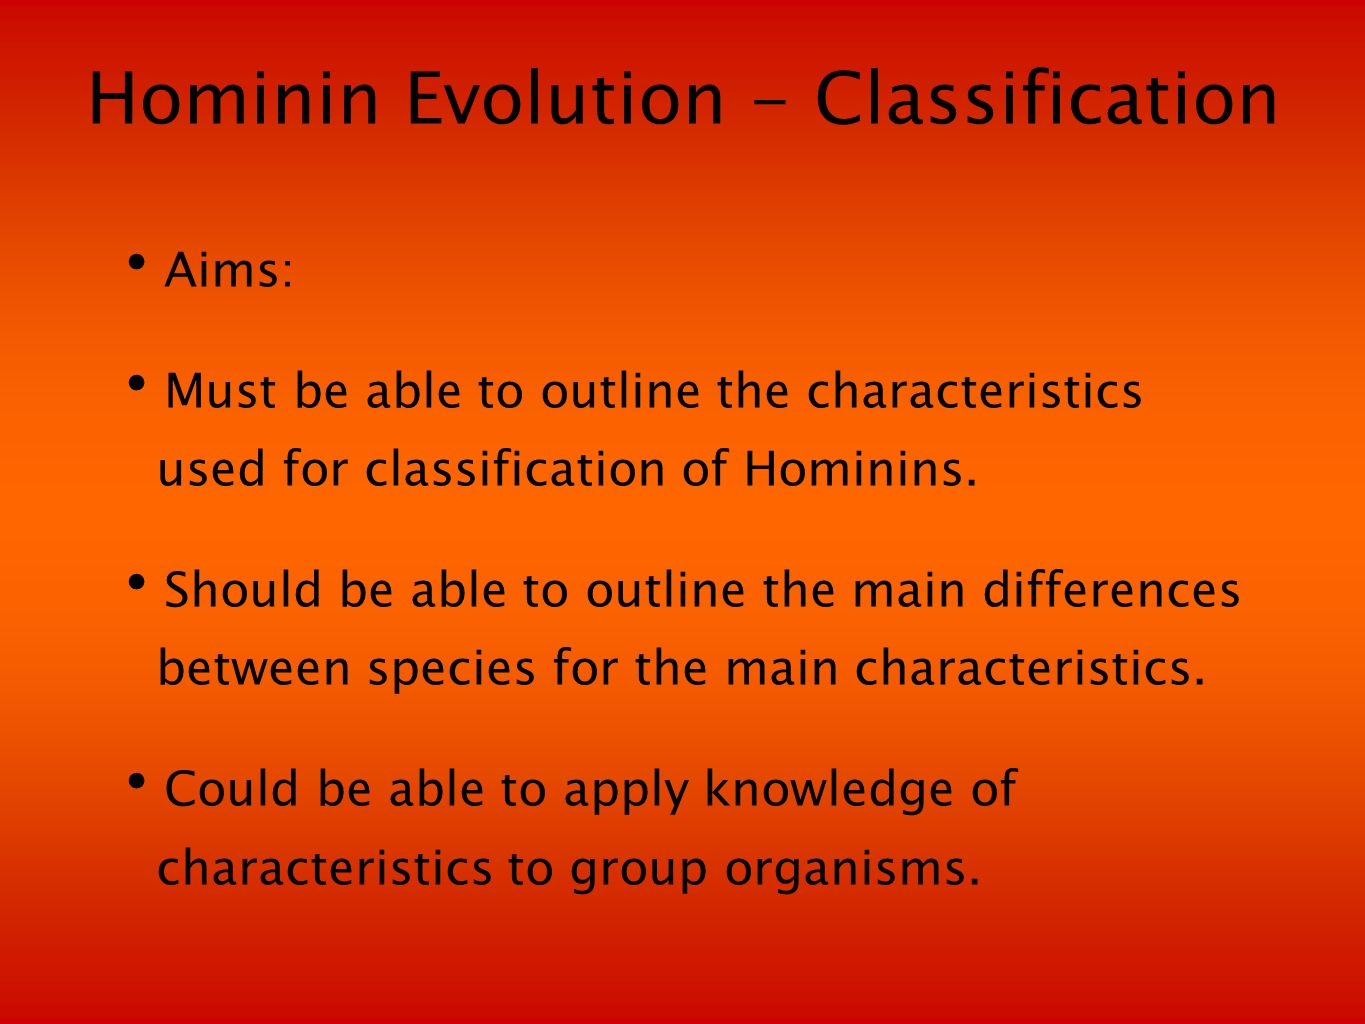 Hominin Evolution - Classification Aims: Must be able to outline the characteristics used for classification of Hominins.